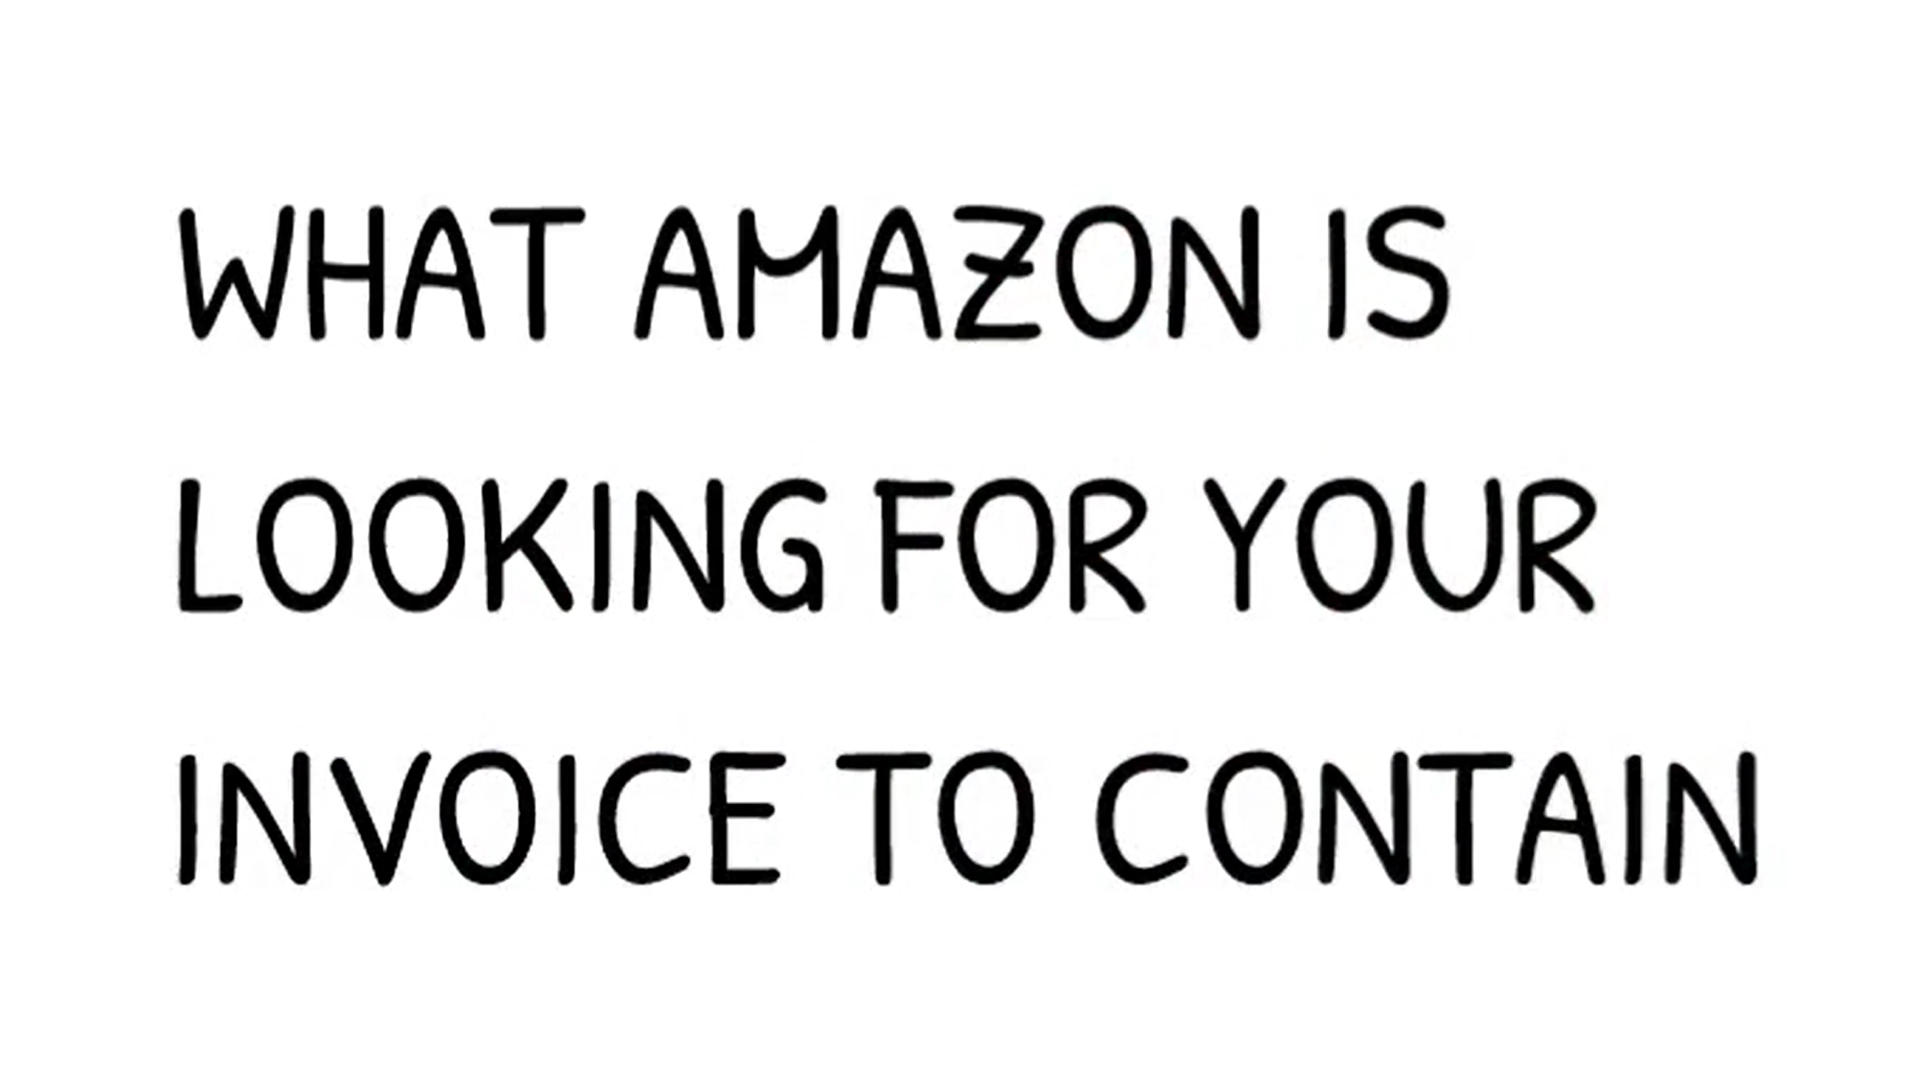 What Amazon is Looking for Invoices to Contain